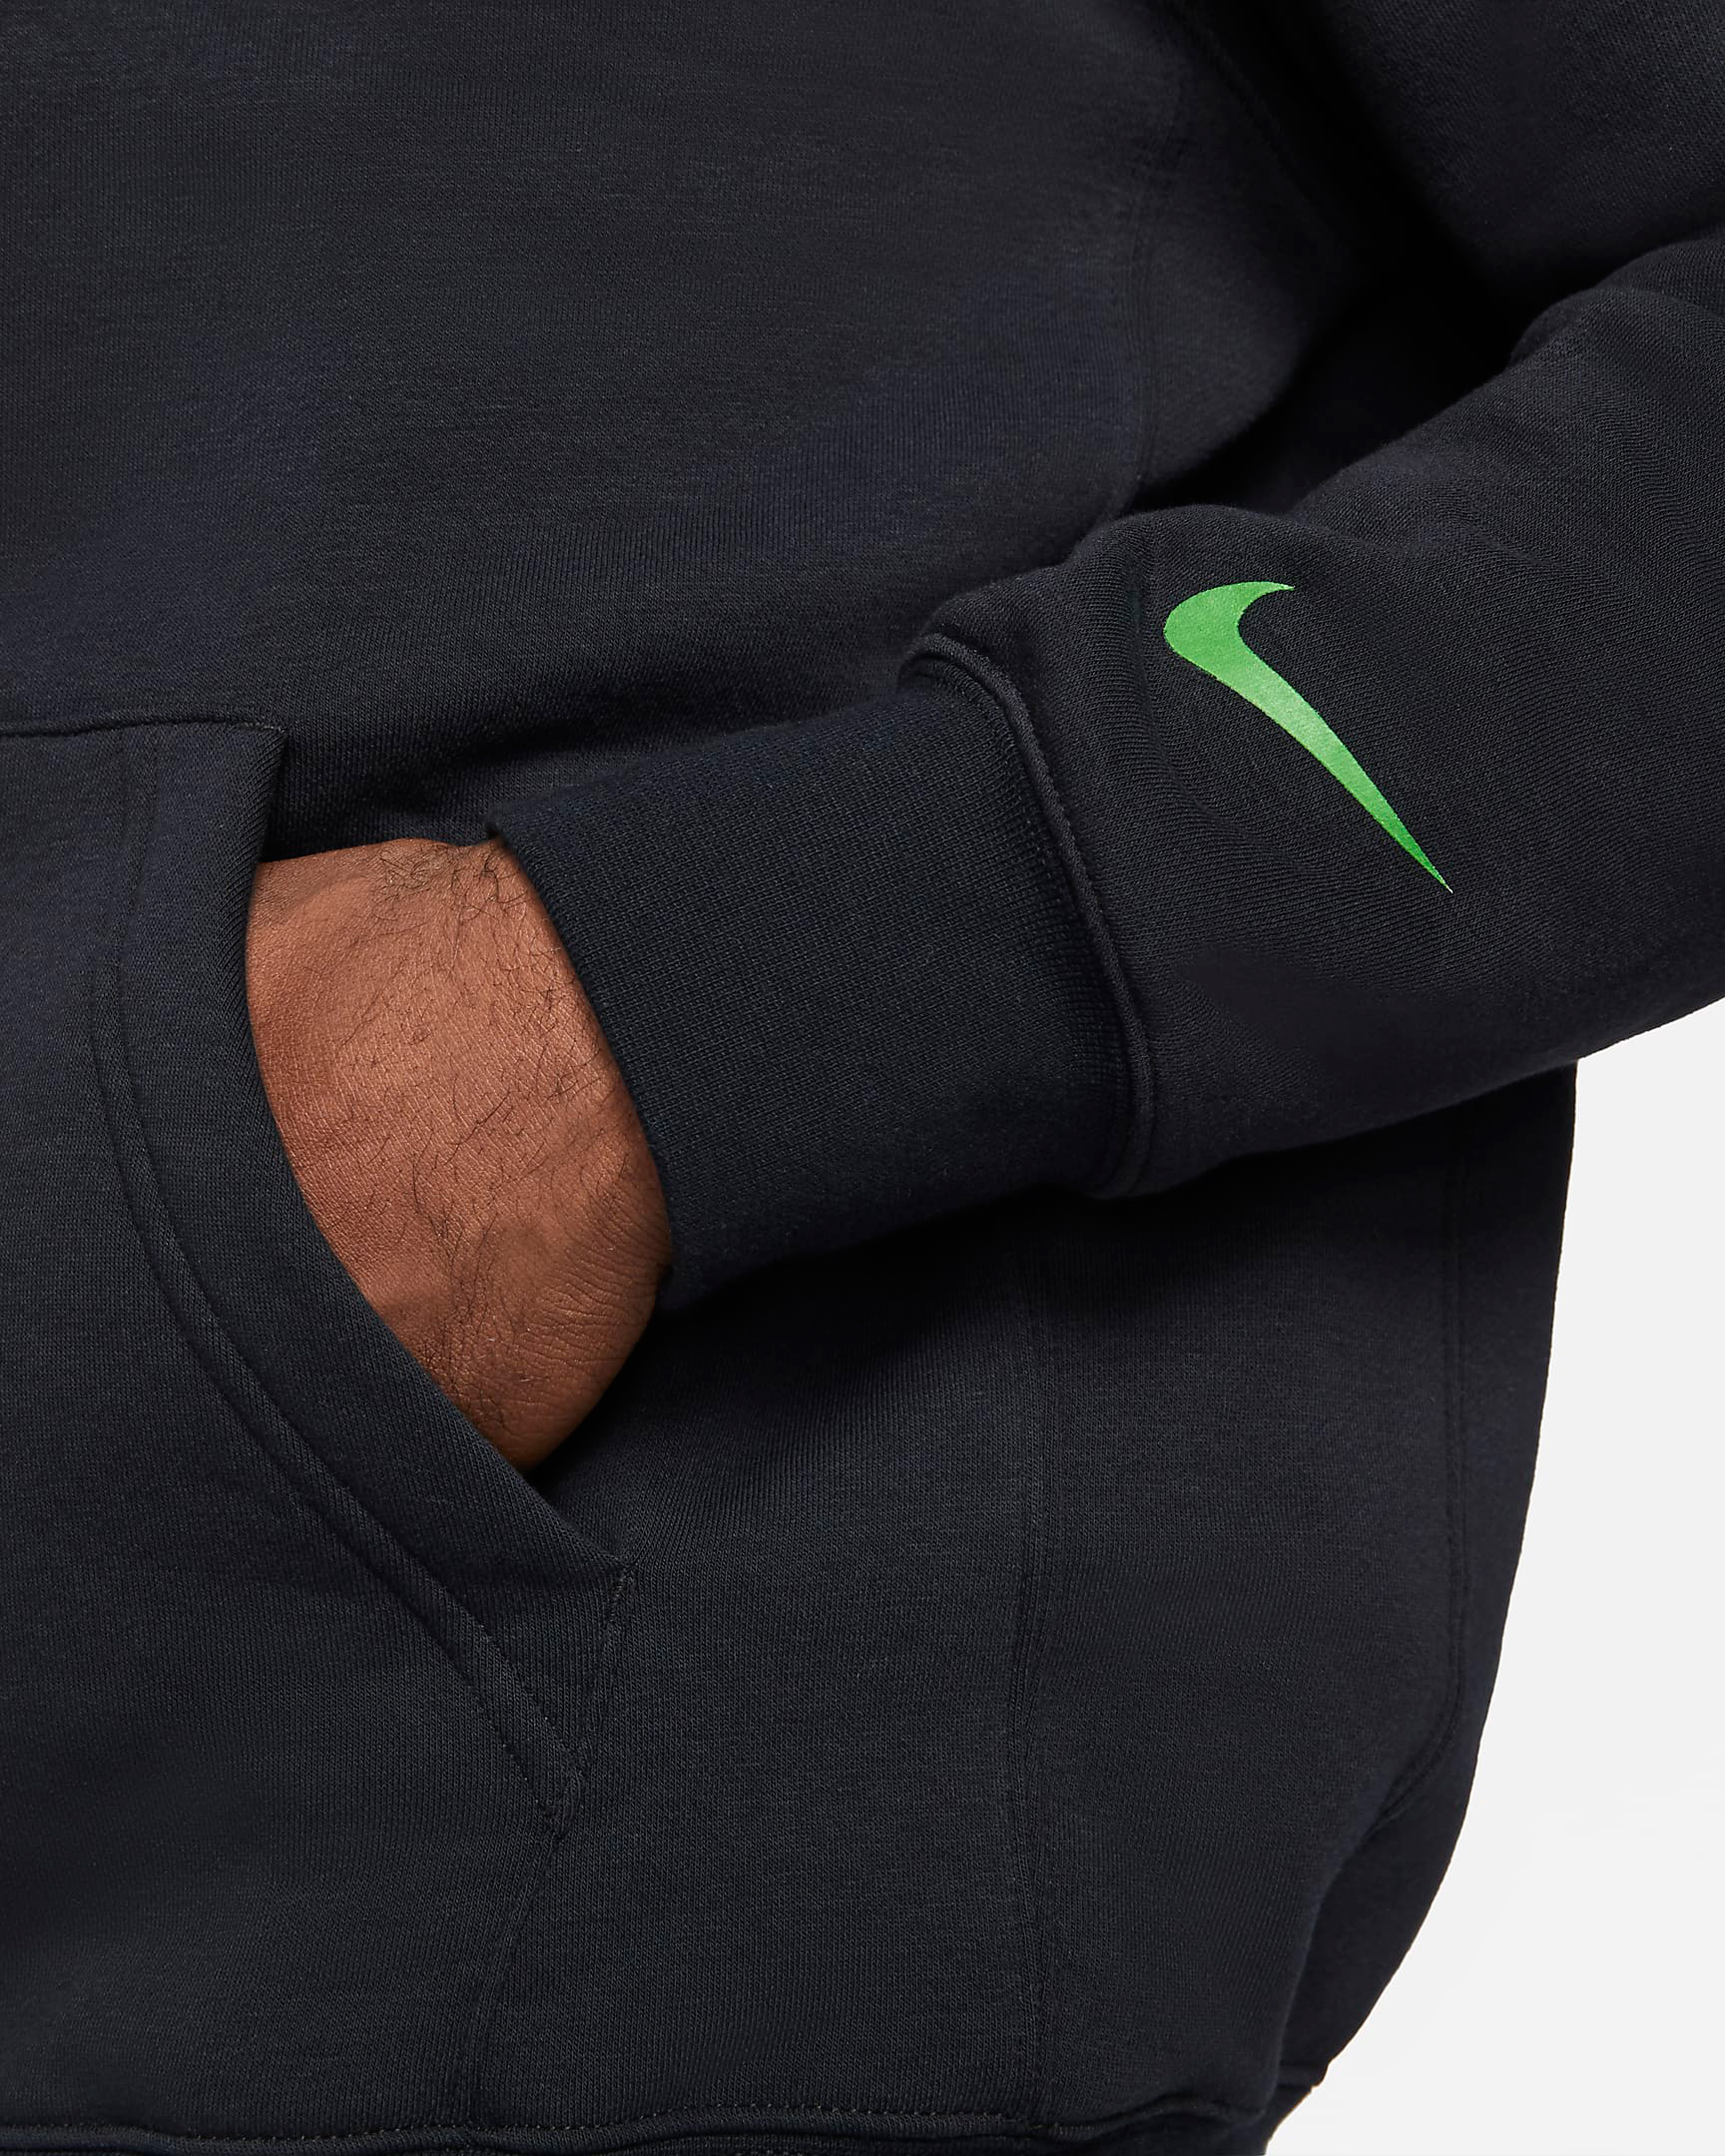 nike-sportswear-optimist-hoodie-black-green-3